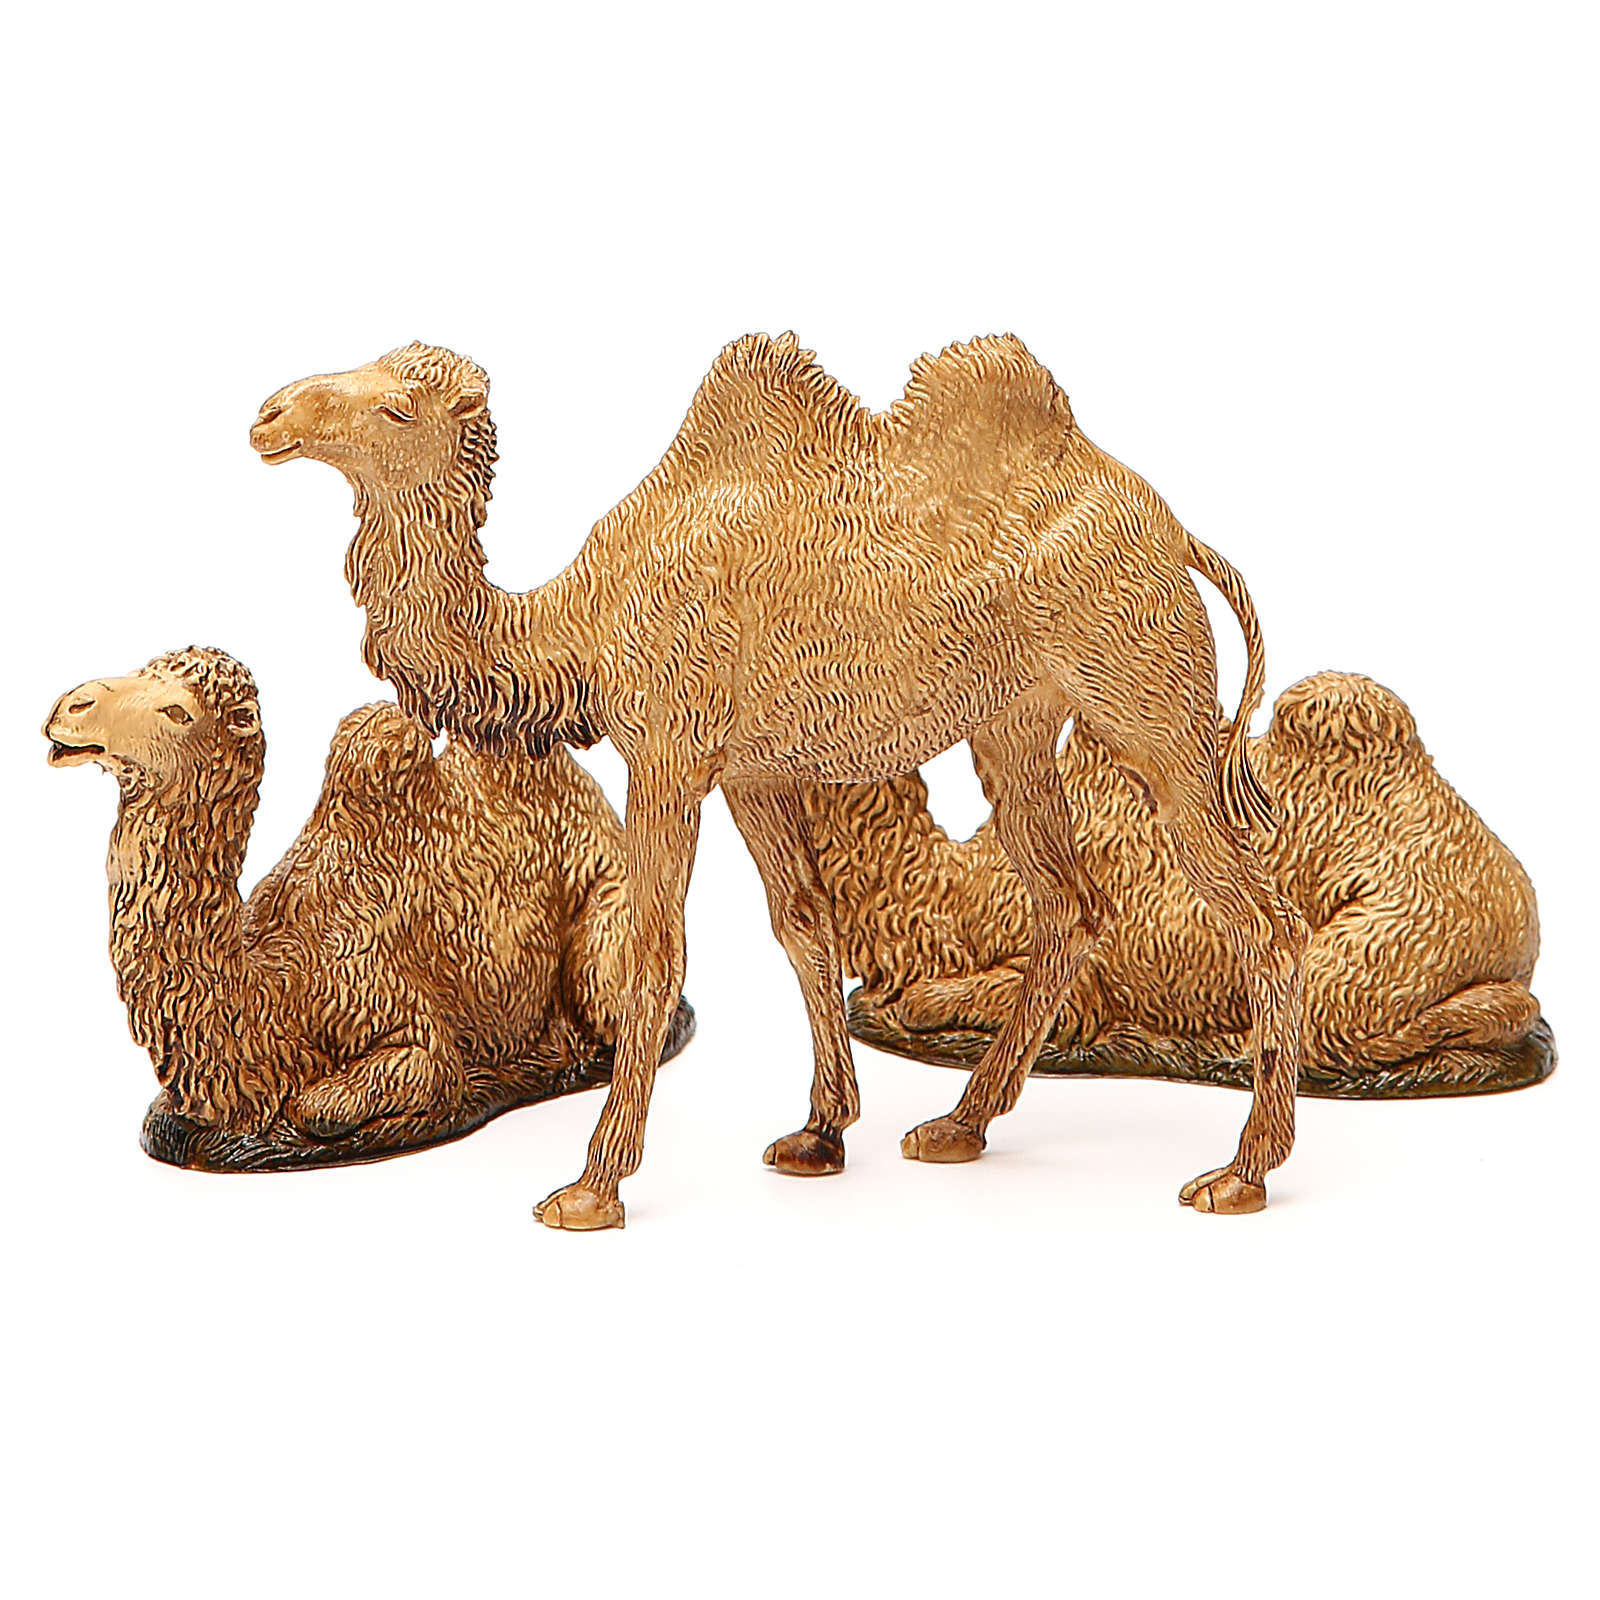 Camels, 3pcs 8-10cm Moranduzzo collection 4